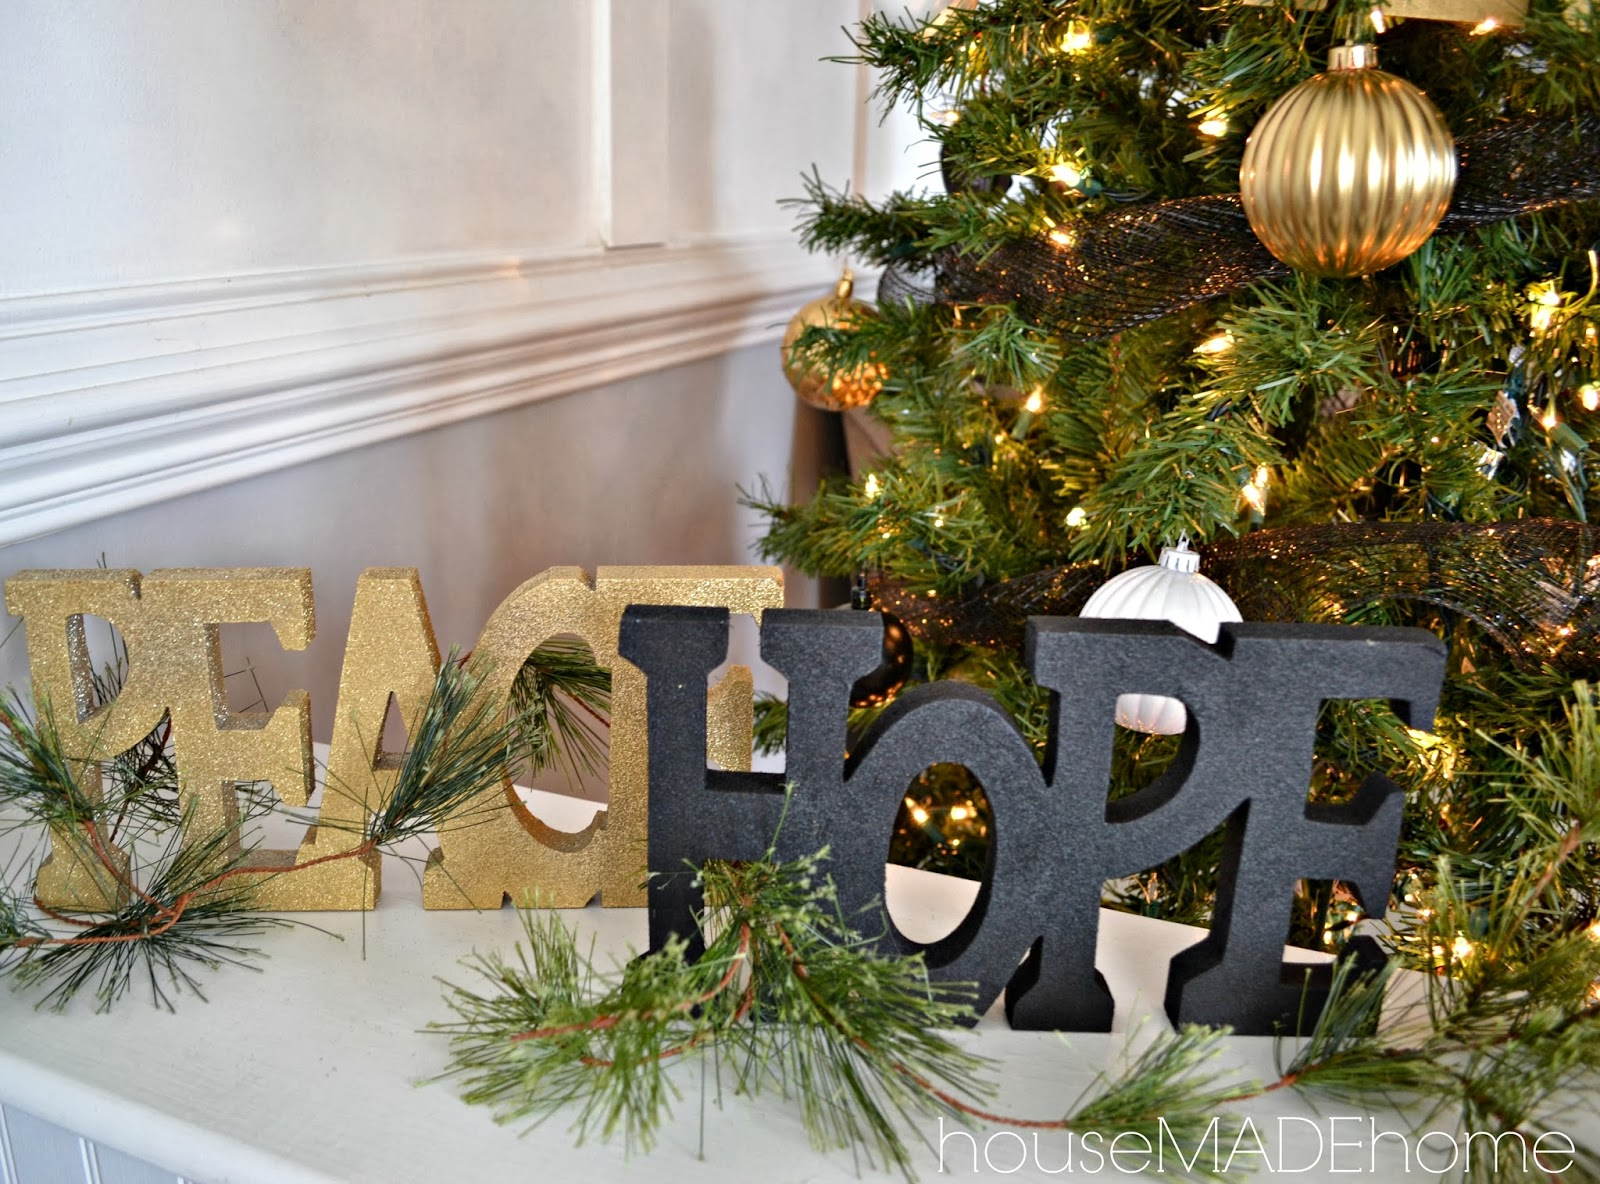 Hmh designs a modern glam christmas home tour - Awesome the modern christmas decorations ...